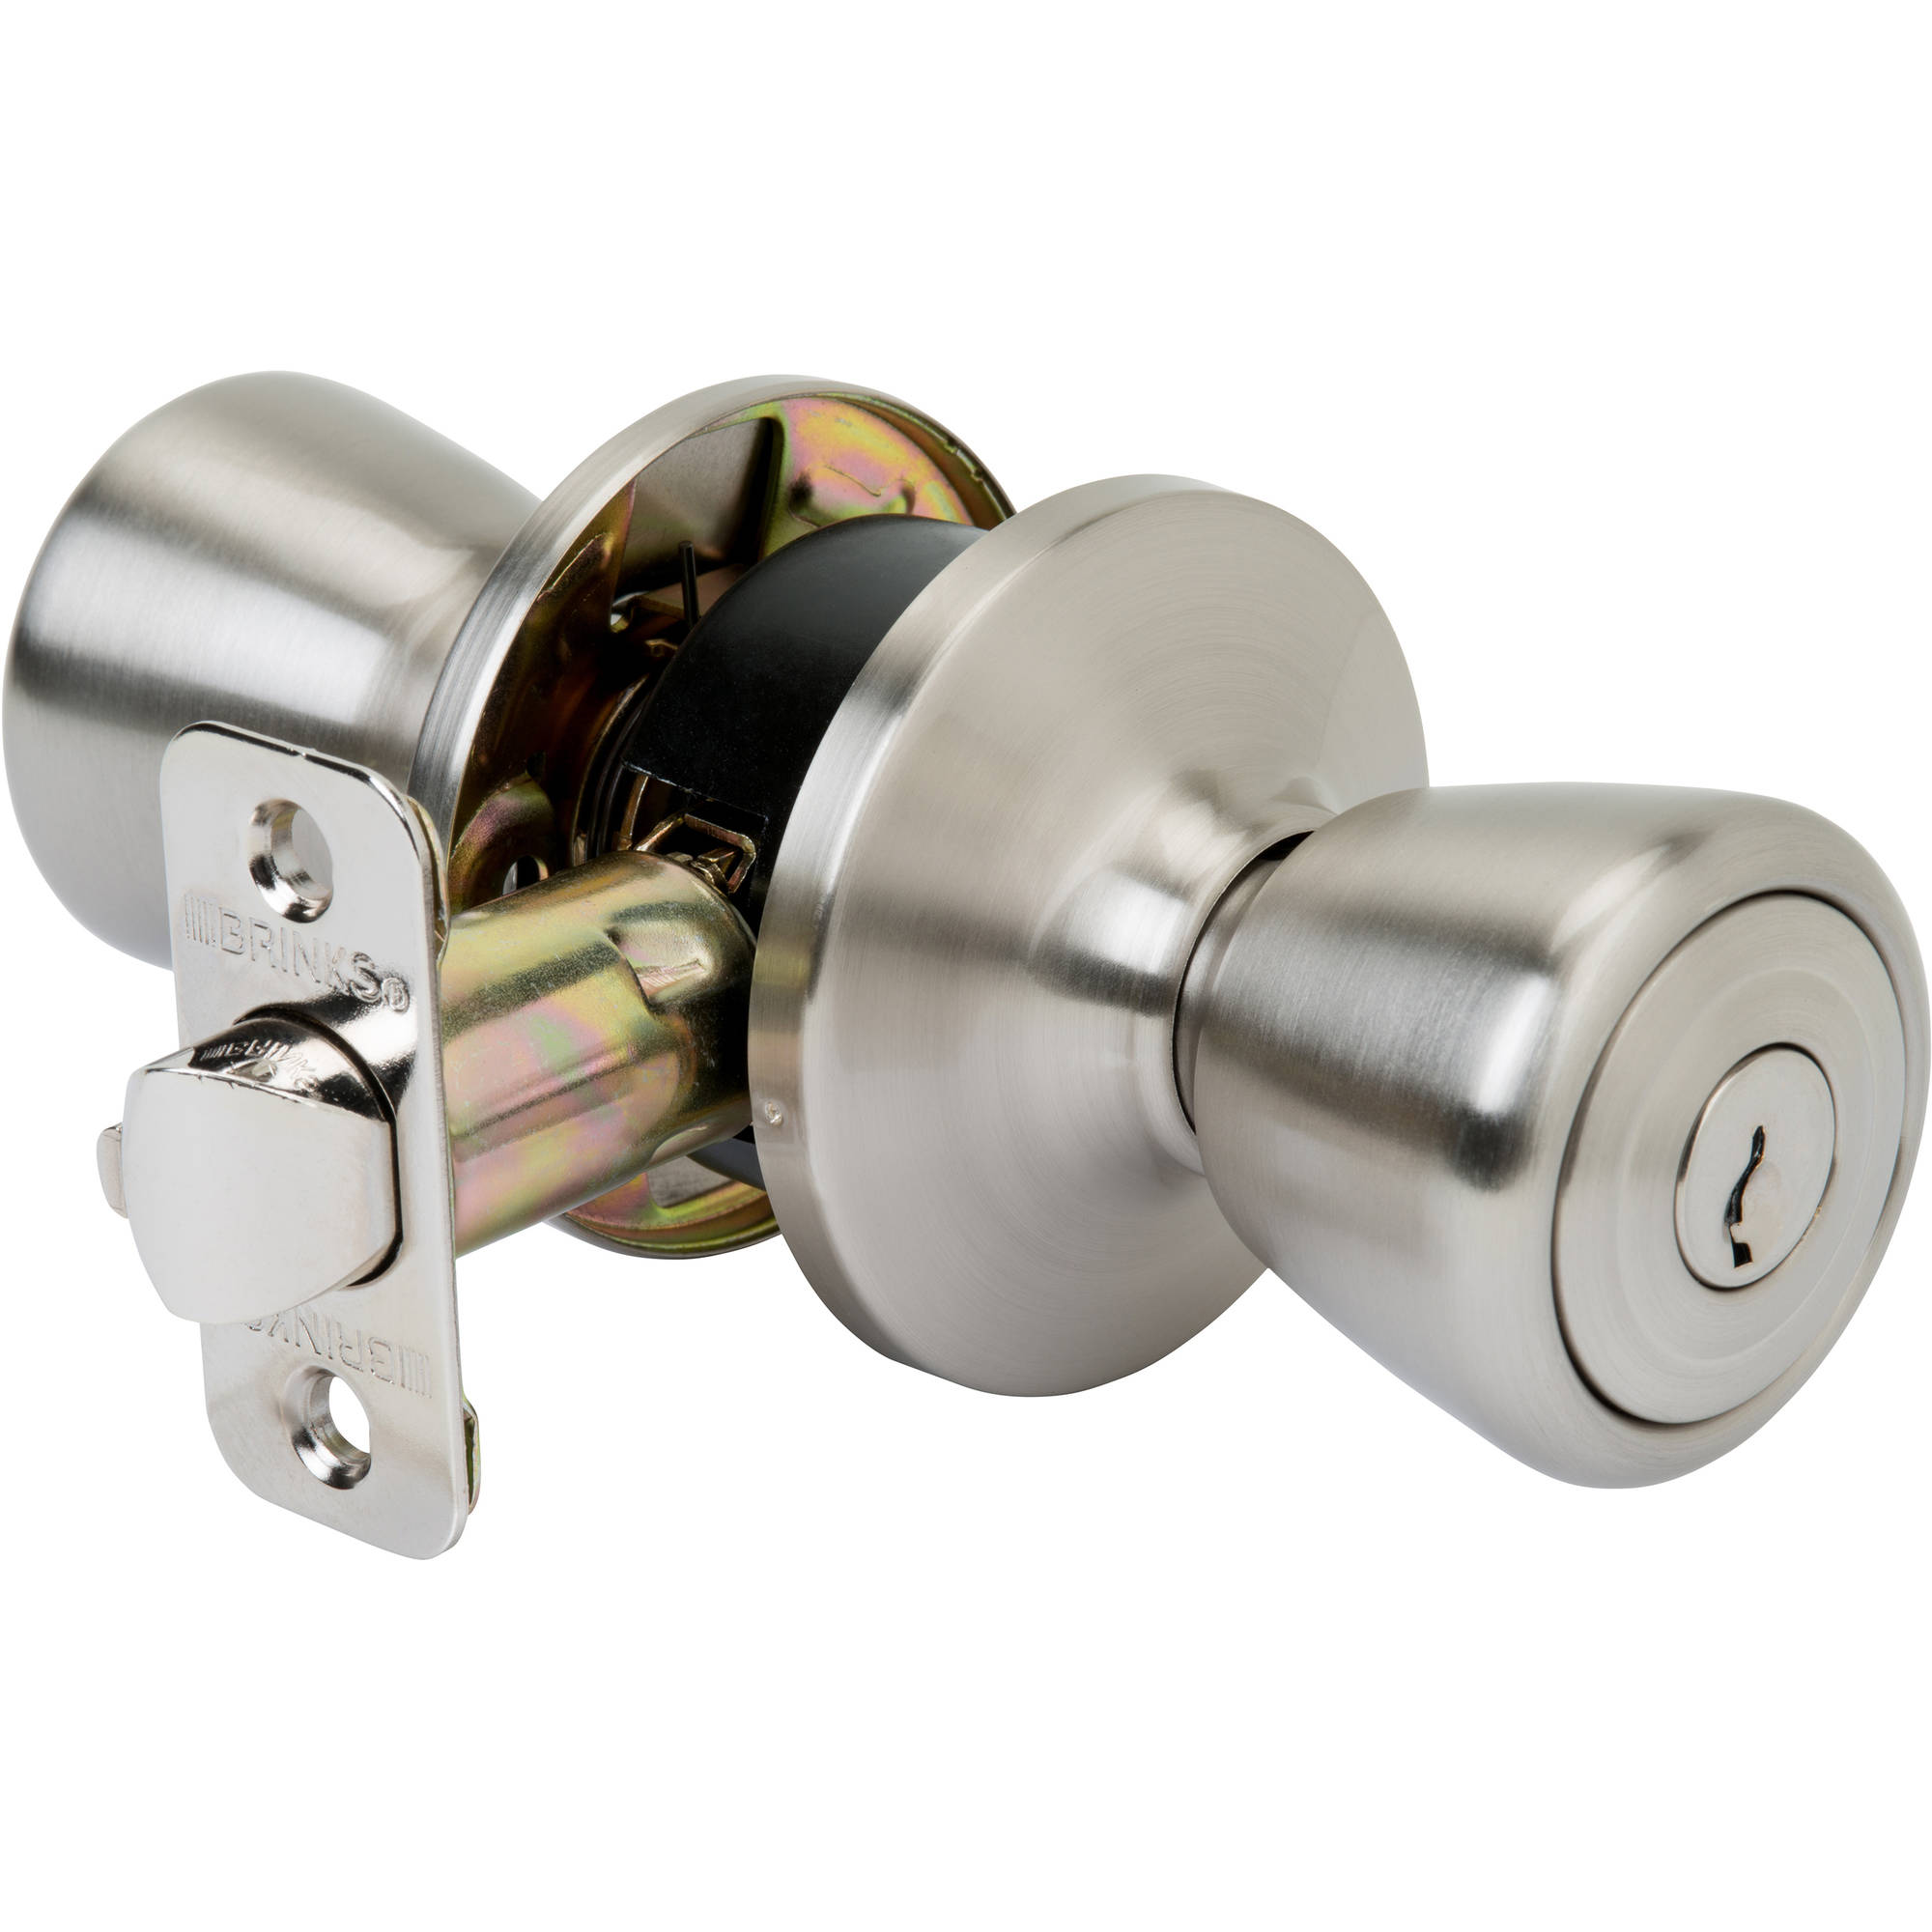 Perfect Brinks Tulip Style Keyed Entry Door Knob Satin Nickel   Walmart.com